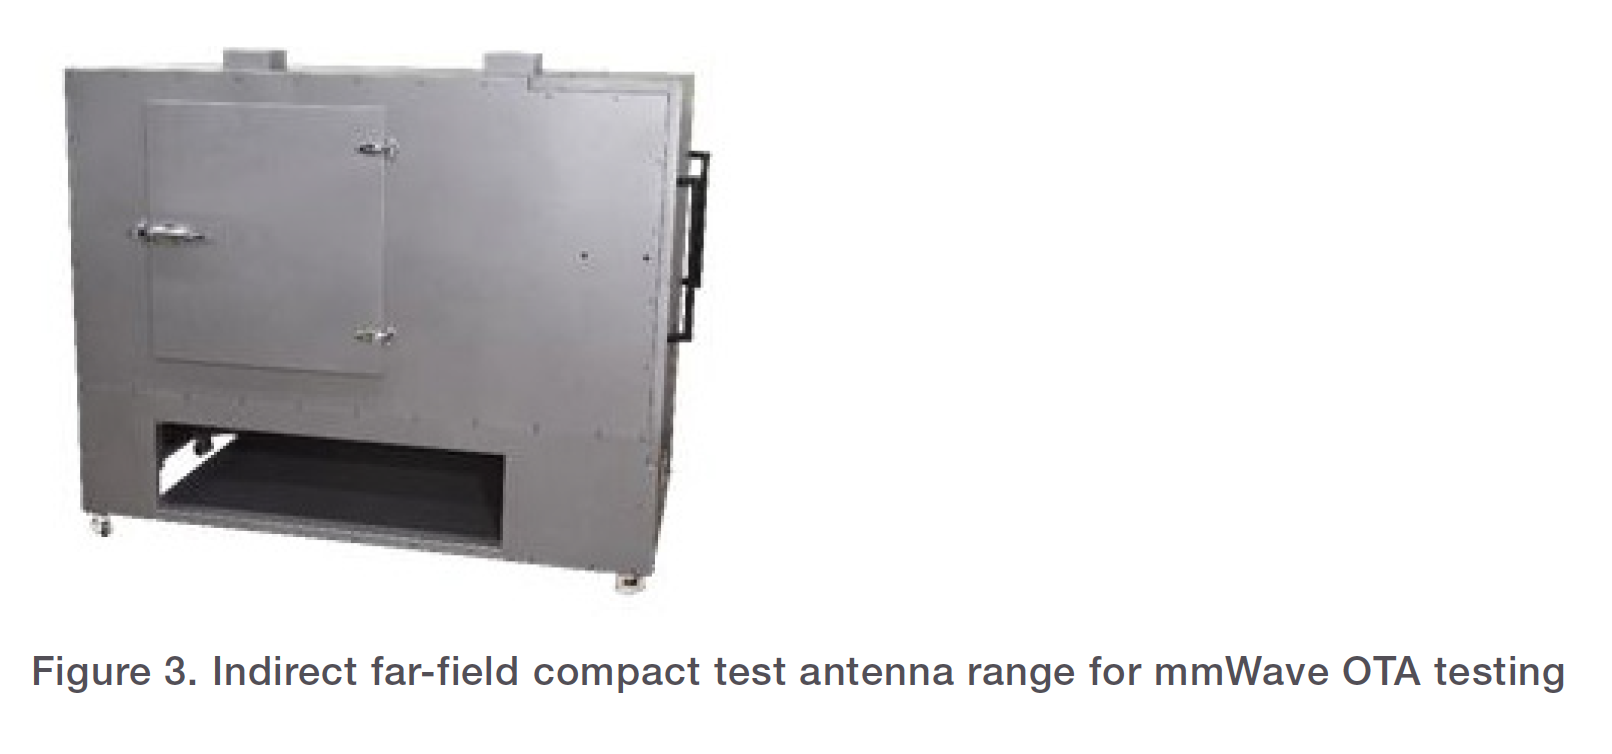 Figure 3. Indirect far-field compact test antenna range for mmWave OTA testing